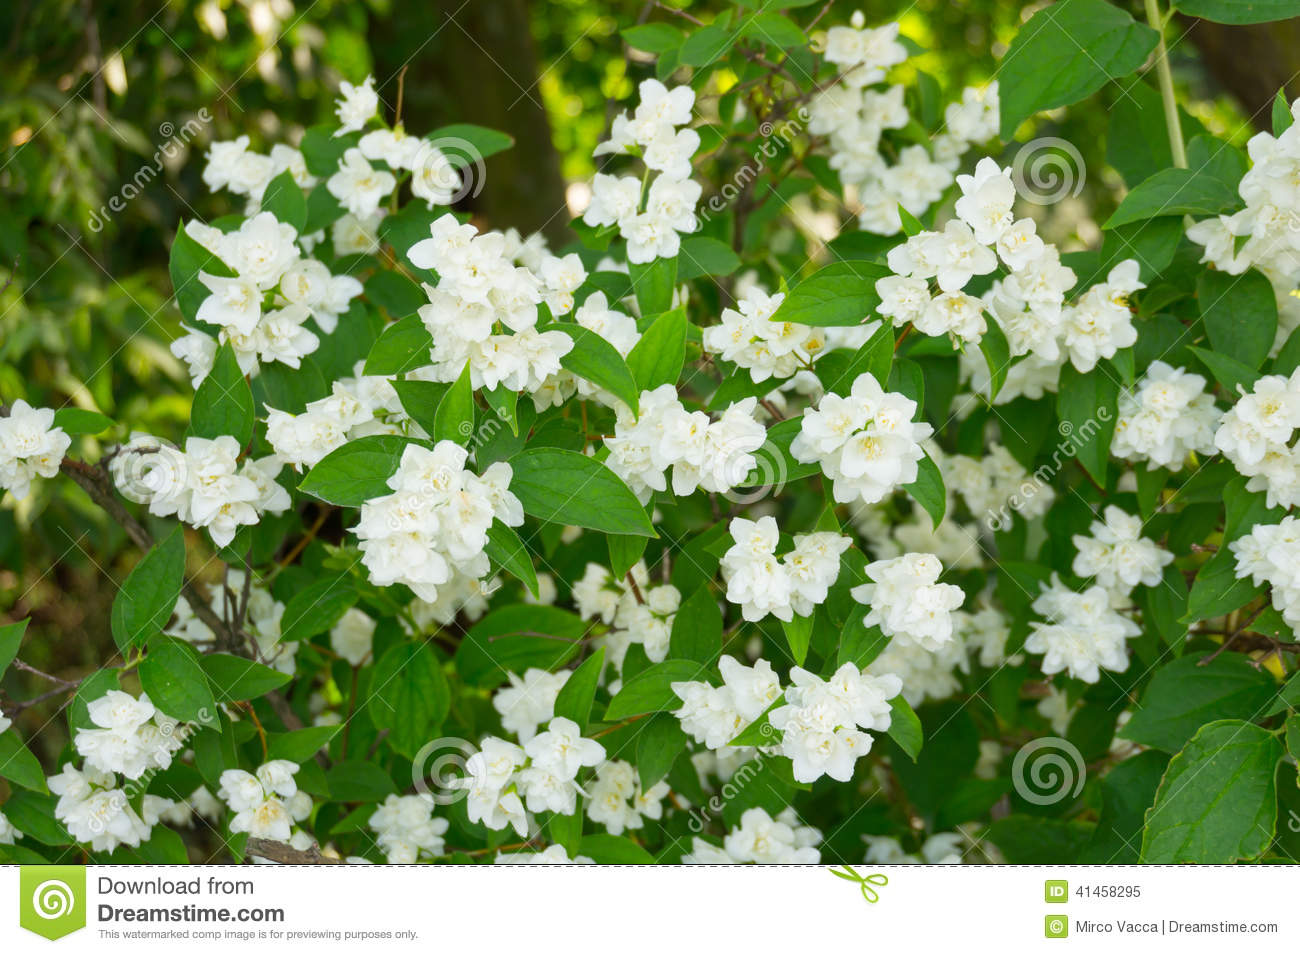 Weigelia Fiori Bianchi.White Bush Flowers Stock Image Image Of Bush Nature 41458295